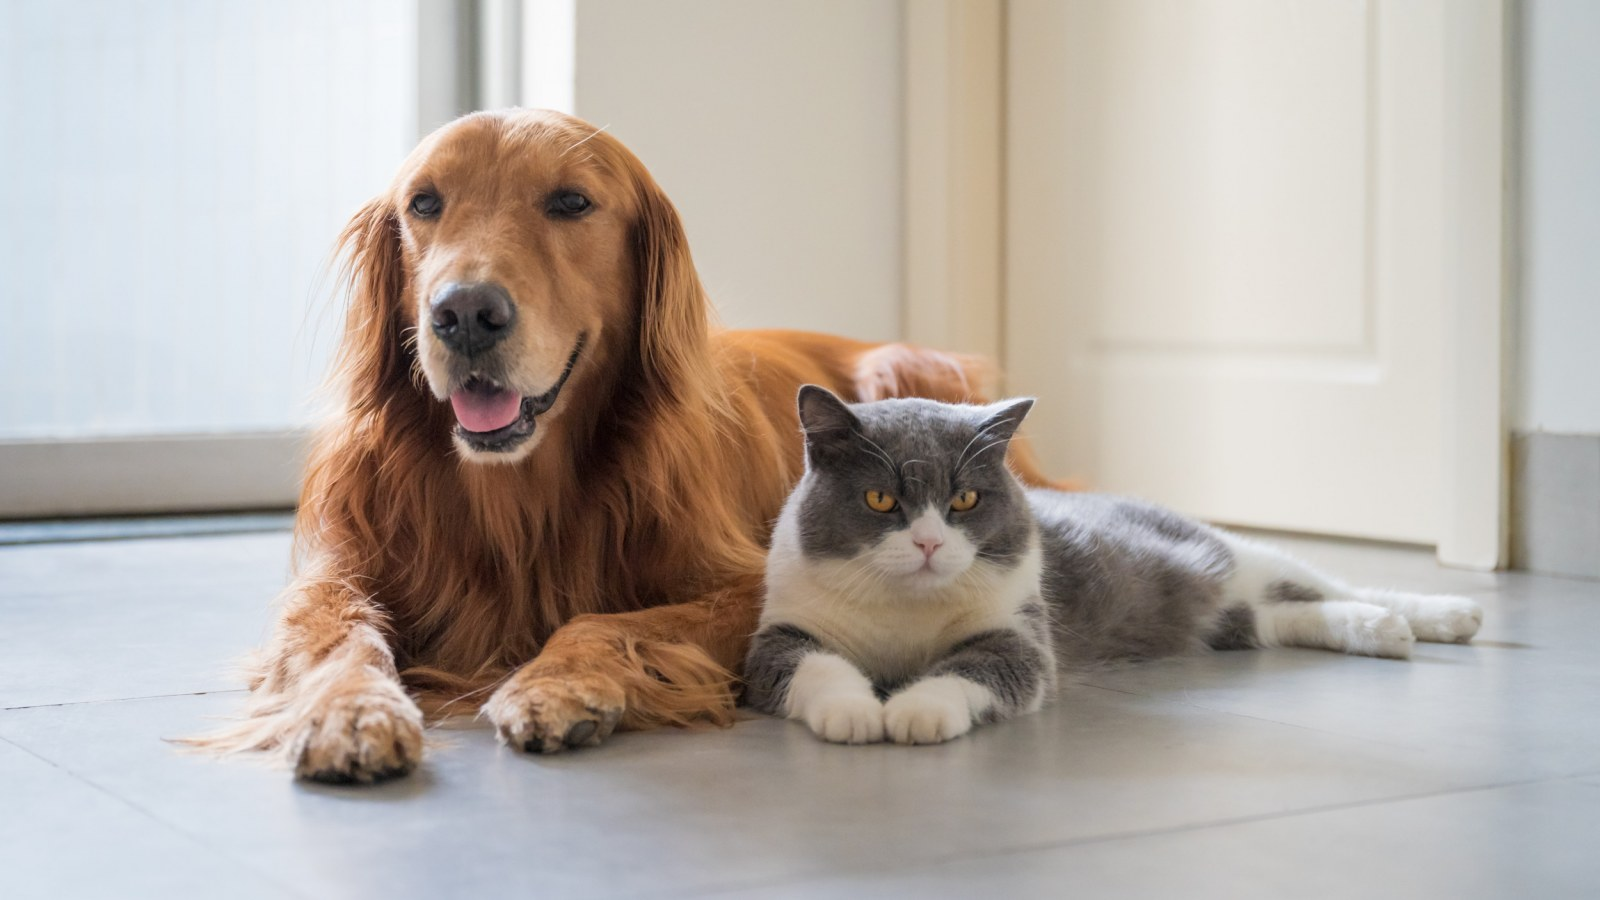 Cat 'Becomes a Dog' by Copying Its Behavior in Adorable Video